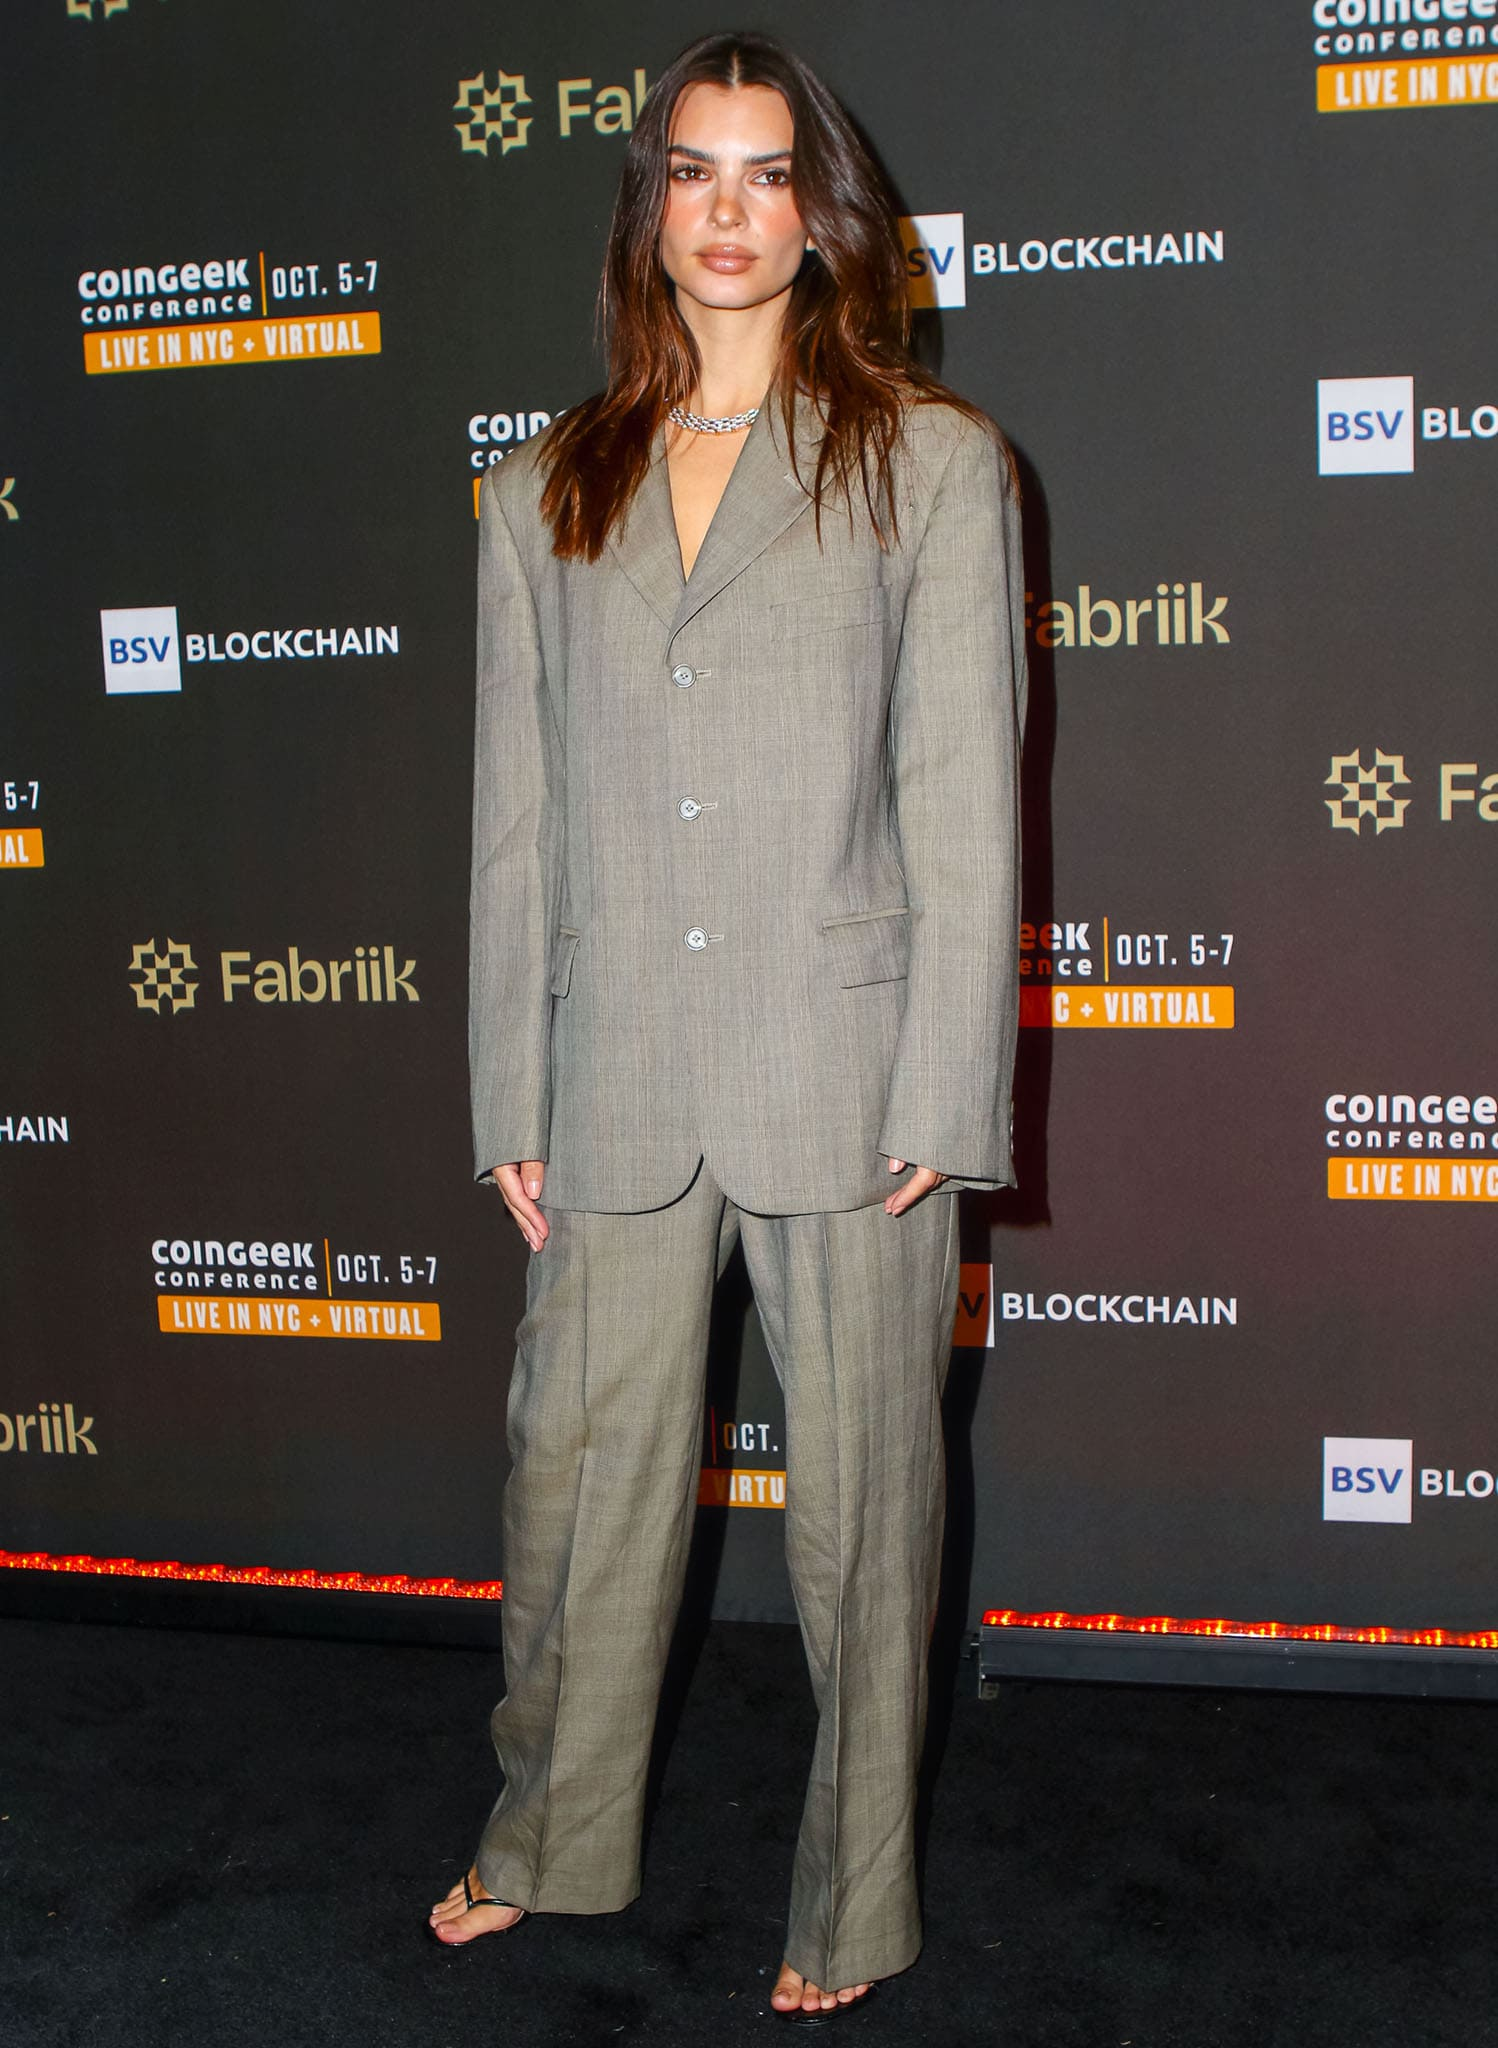 Emily Ratajkowski attends Coin Greek cocktail party at Gustavino's in New York City on October 4, 2021 after accusing Robin Thicke of groping her breasts